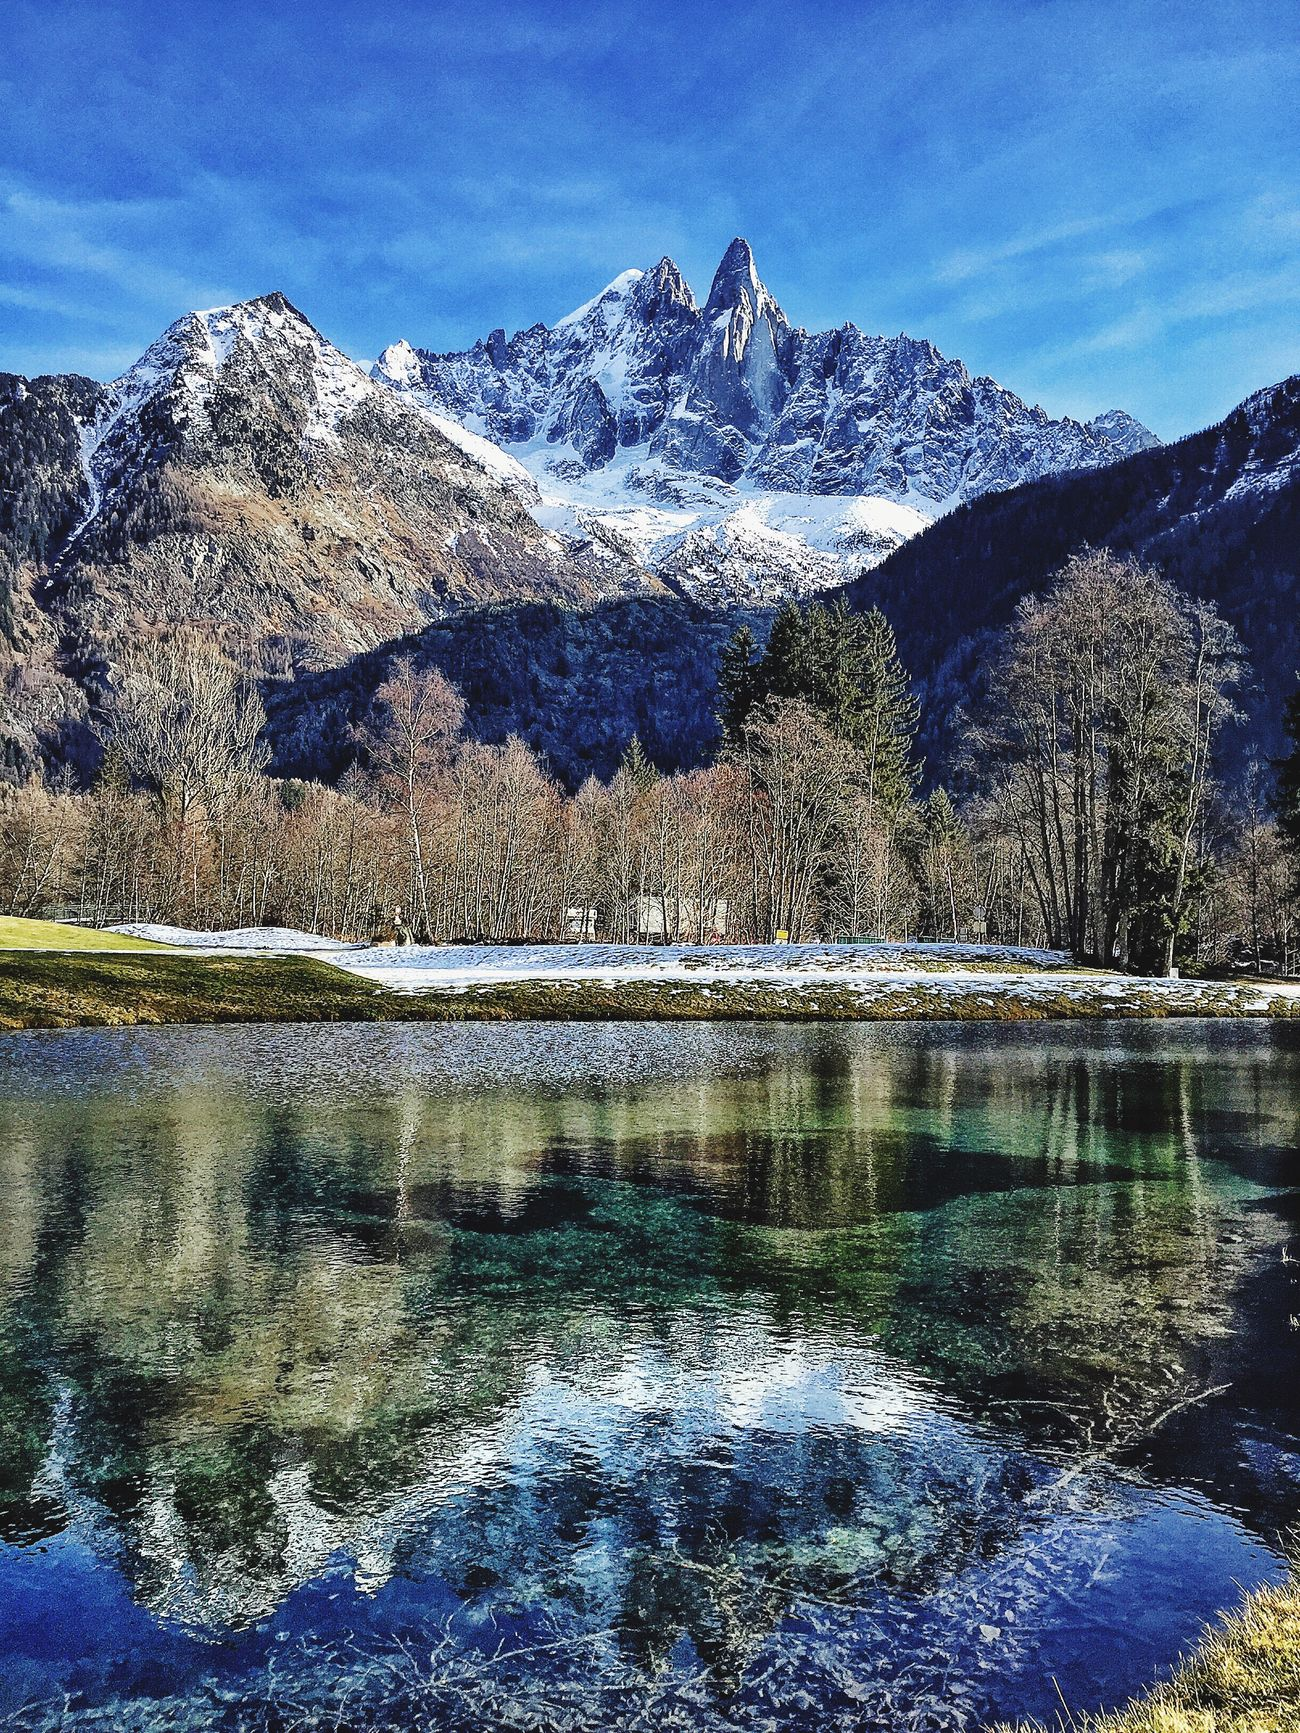 Take a breath and feel the nature 😊 Hello World Enjoying Life Montblanc Chamonix-Mont-Blanc Flegere Happynewyear2016 Water Reflections Reflection Reflections Reflection_collection